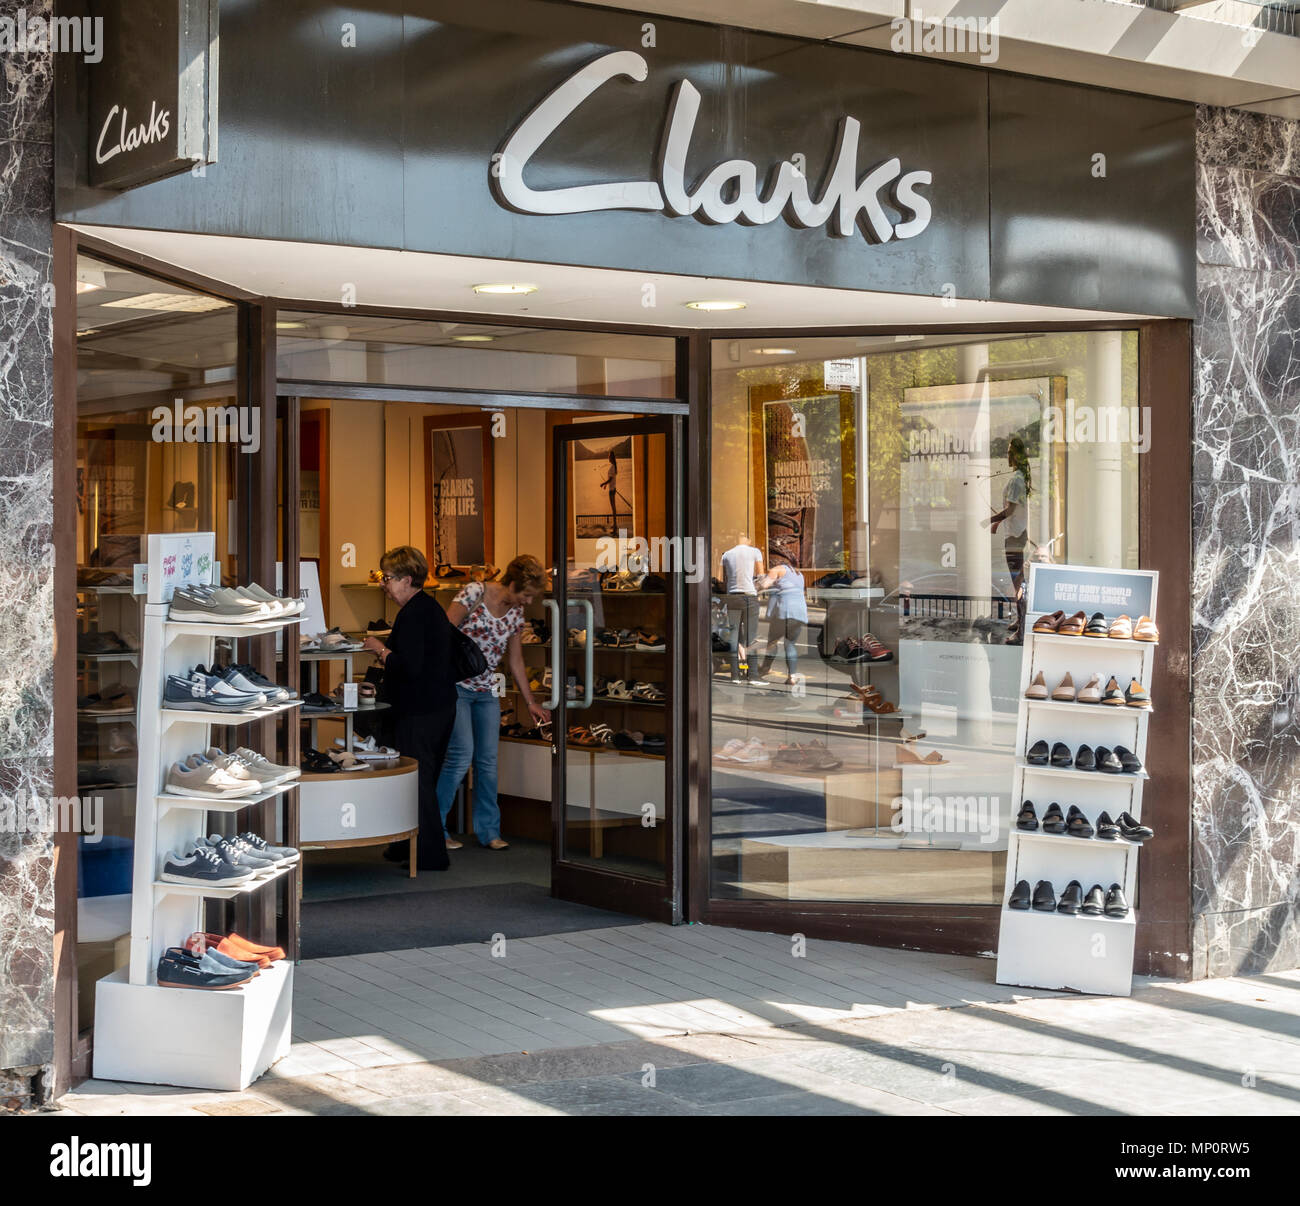 Customers browsing footwear in a branch of Clarks shoe shop in Hamilton, South Lanarkshire, Scotland. Frontage of shop with open door and shoe display Stock Photo